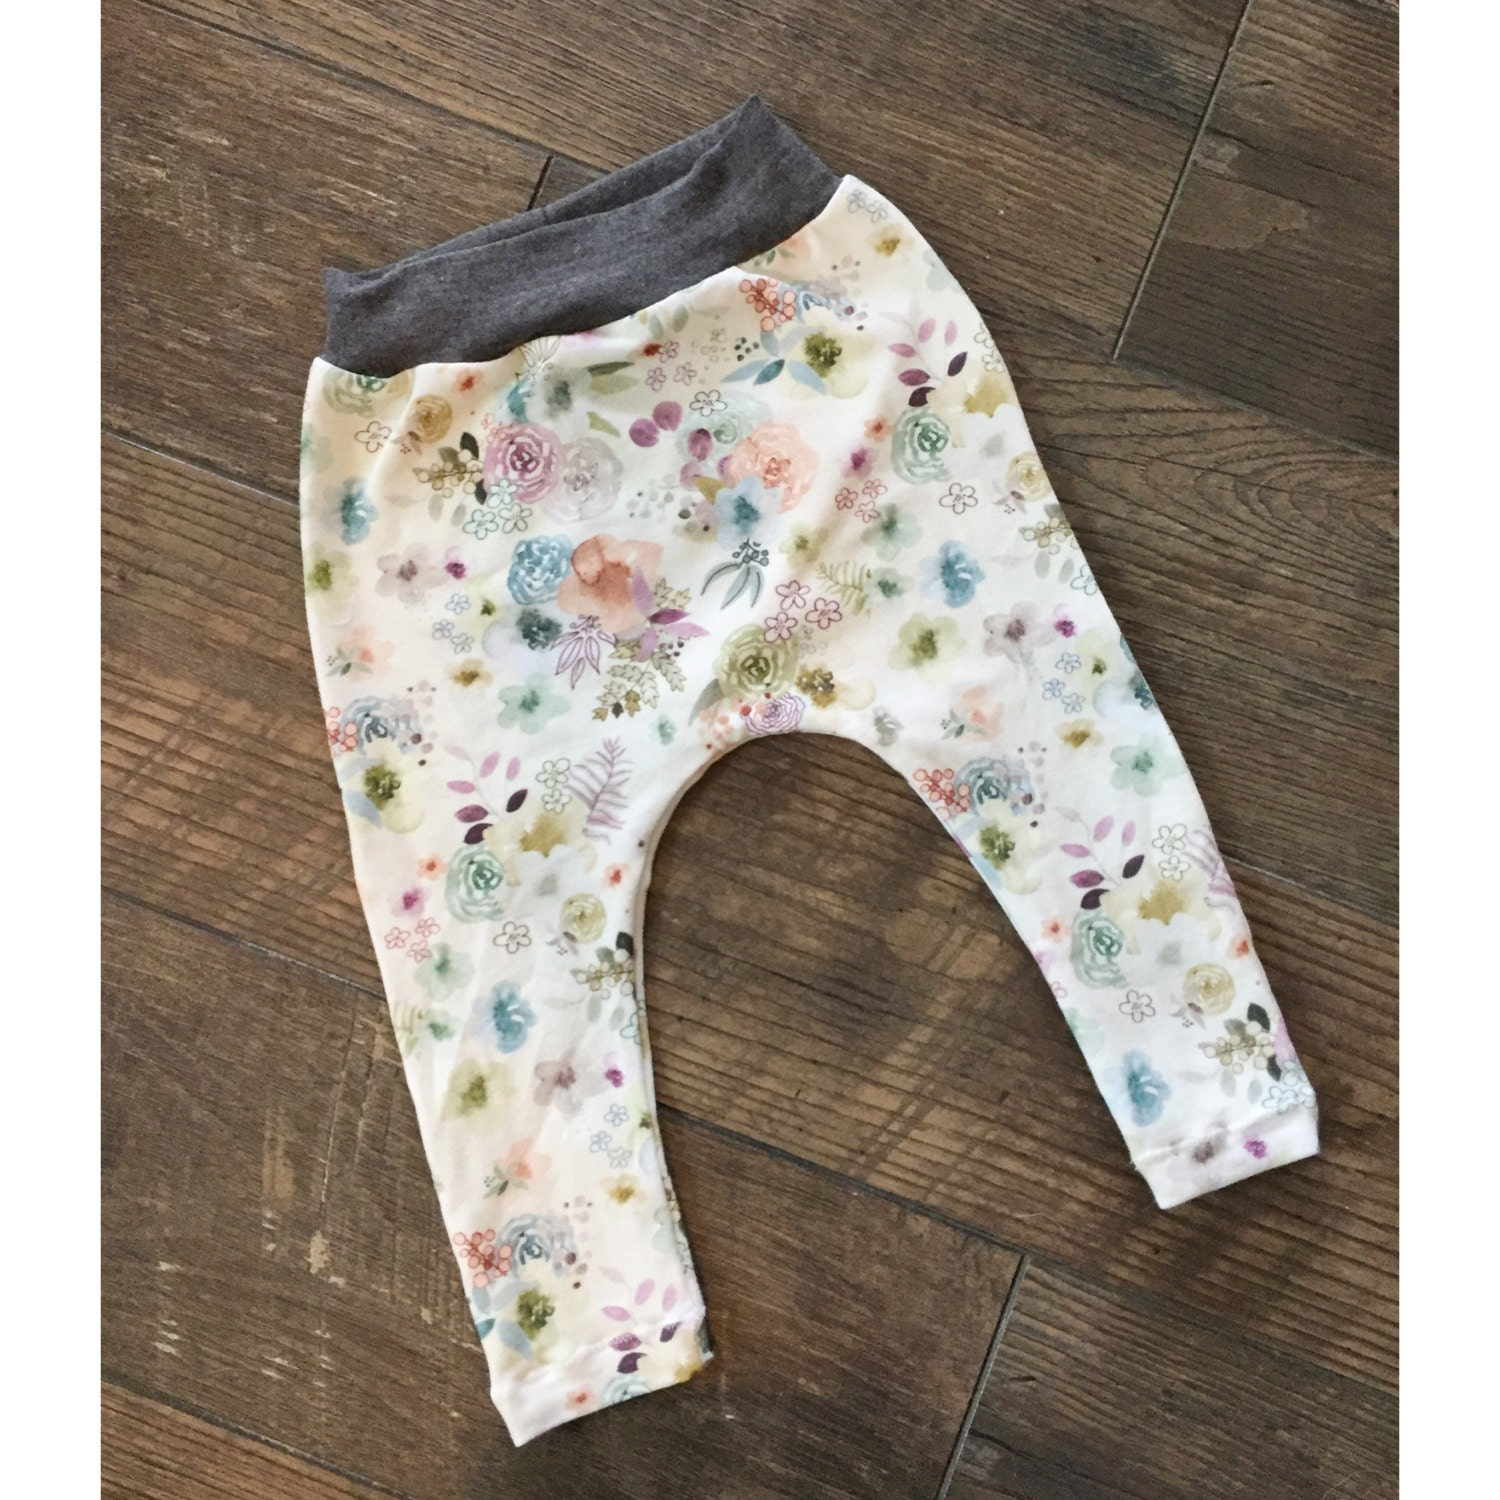 Find great deals on eBay for harem pants girls. Shop with confidence. Skip to main content. eBay: Kid Baby Boy Girl Harem Pants Cotton Linen Trousers Toddler Leggings Sweatpants. Unbranded. $ Buy It Now. Free Shipping. 5% off. WOMEN GIRLS SUMMER HAREM CAPRI LOOSE PANTS LEGGINGS SOFT THIN.